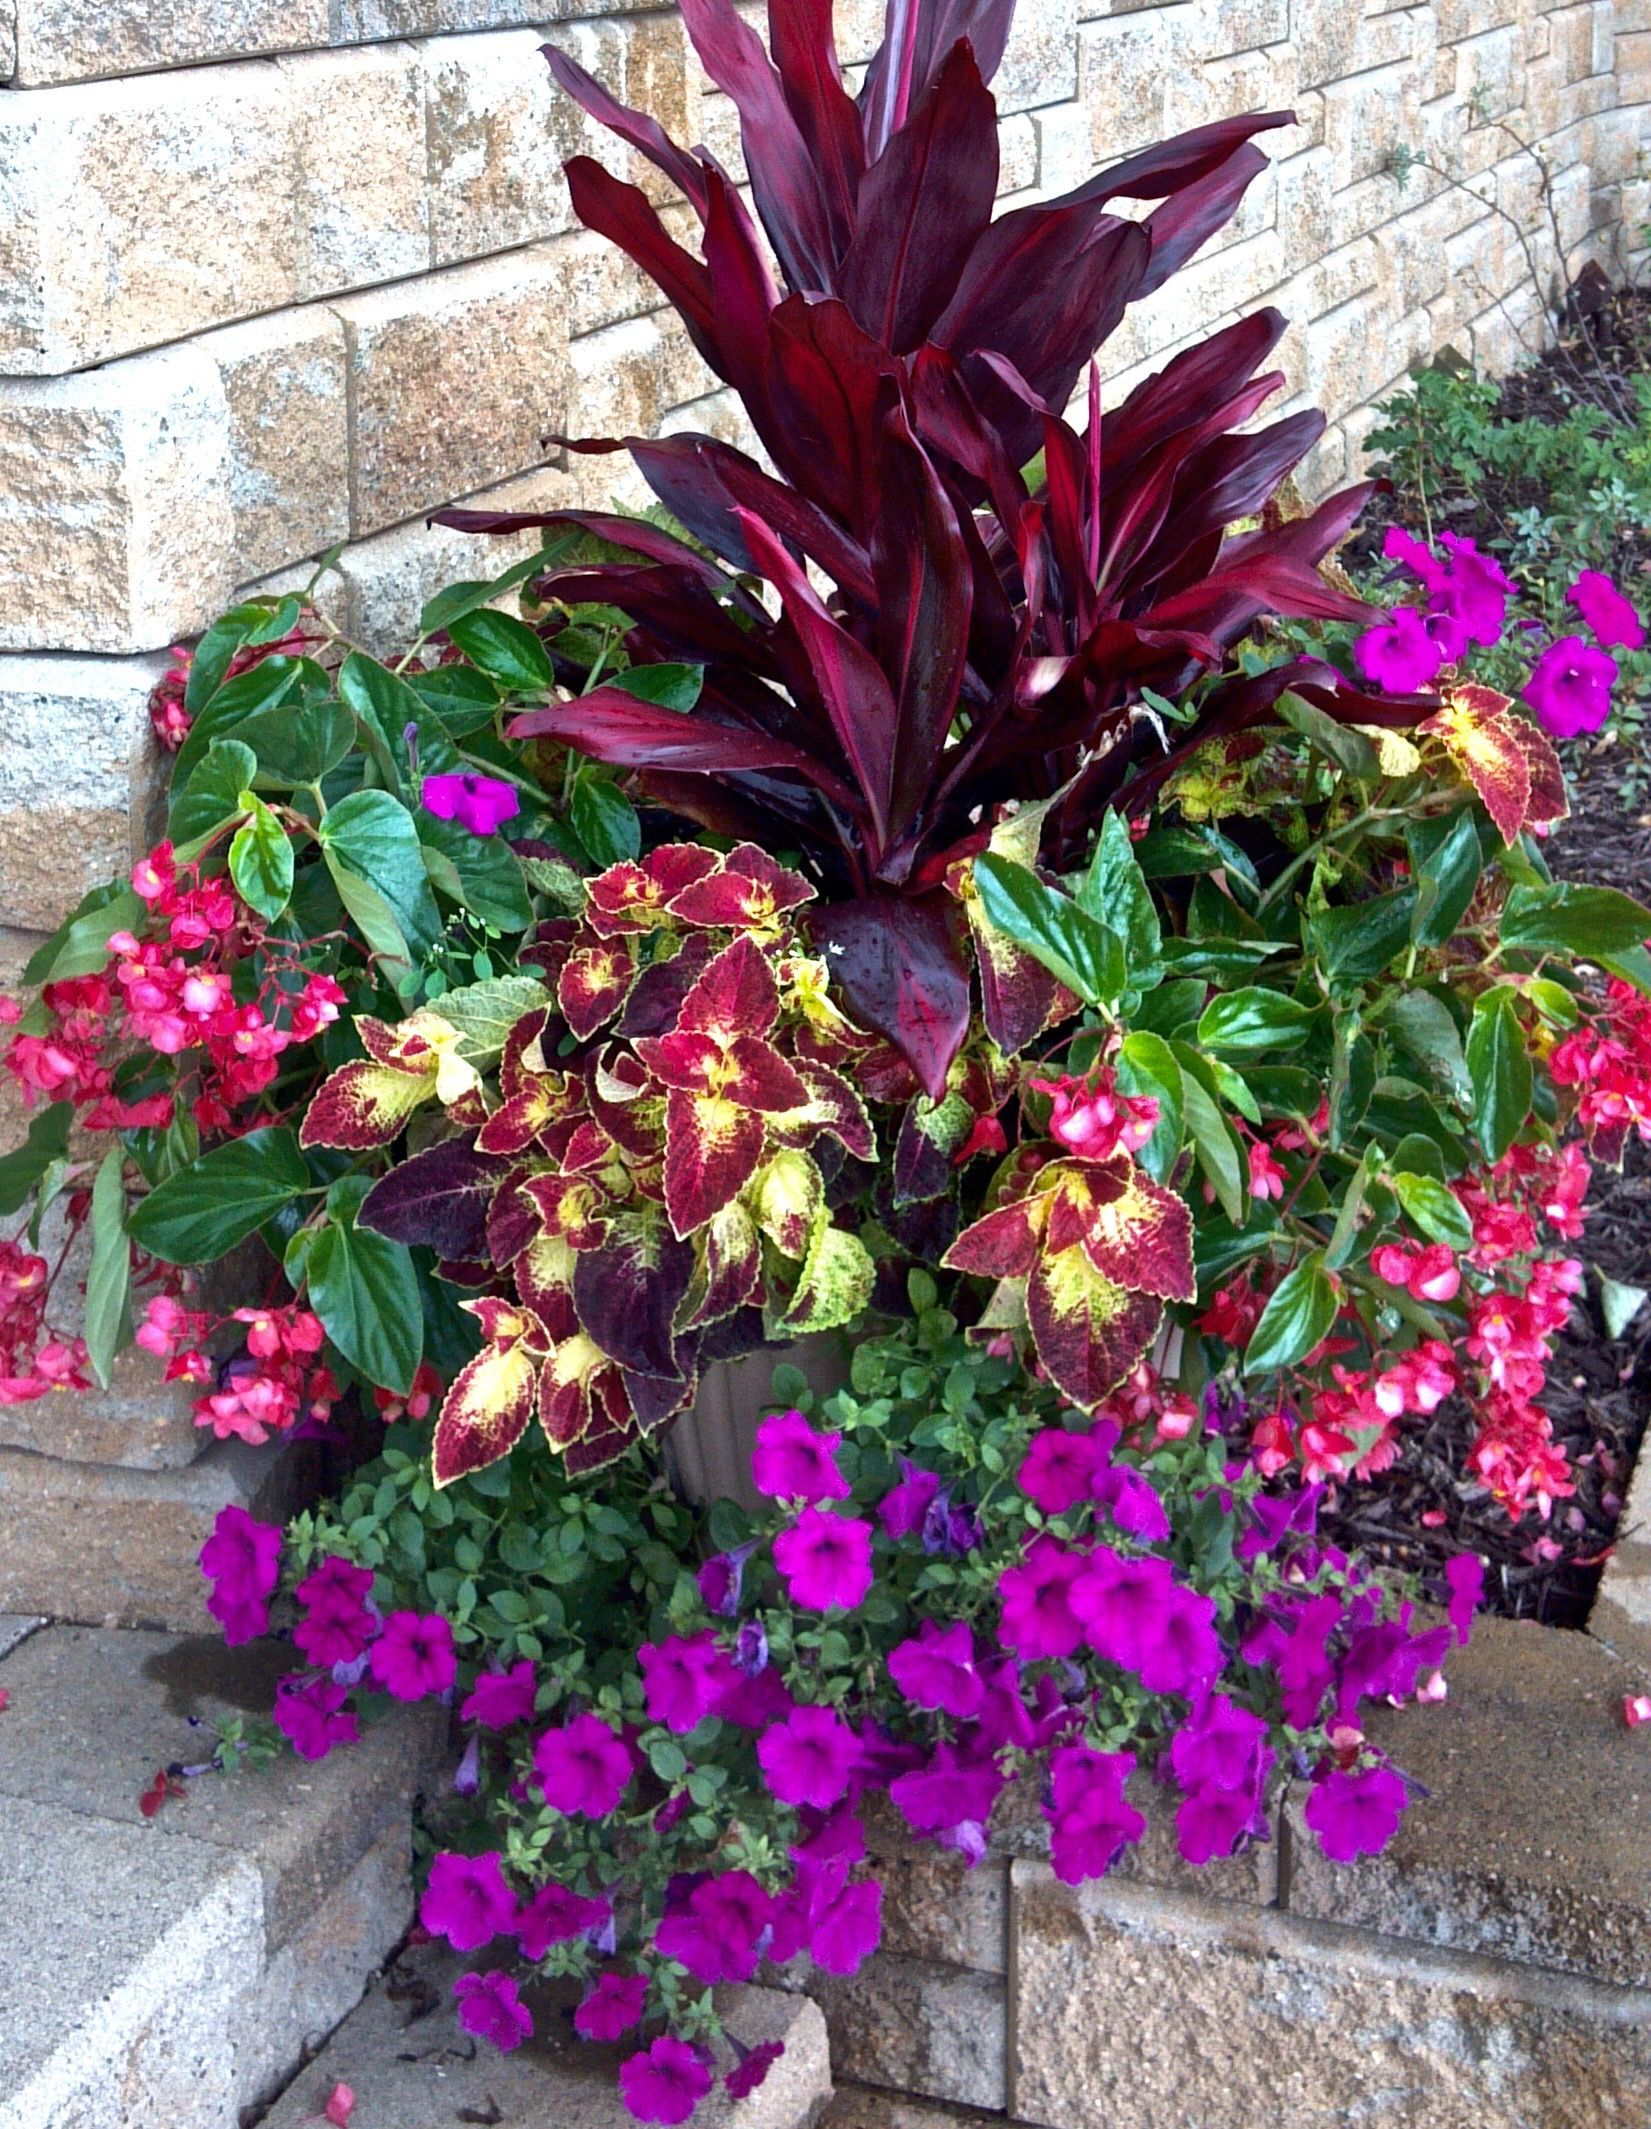 Cordyline Accent Plant With Dragonwing Begonia Dipt In Wine Coleus And Wave Petunias By Maple Crest Flower Pots Garden Flower Beds Container Gardening Flowers